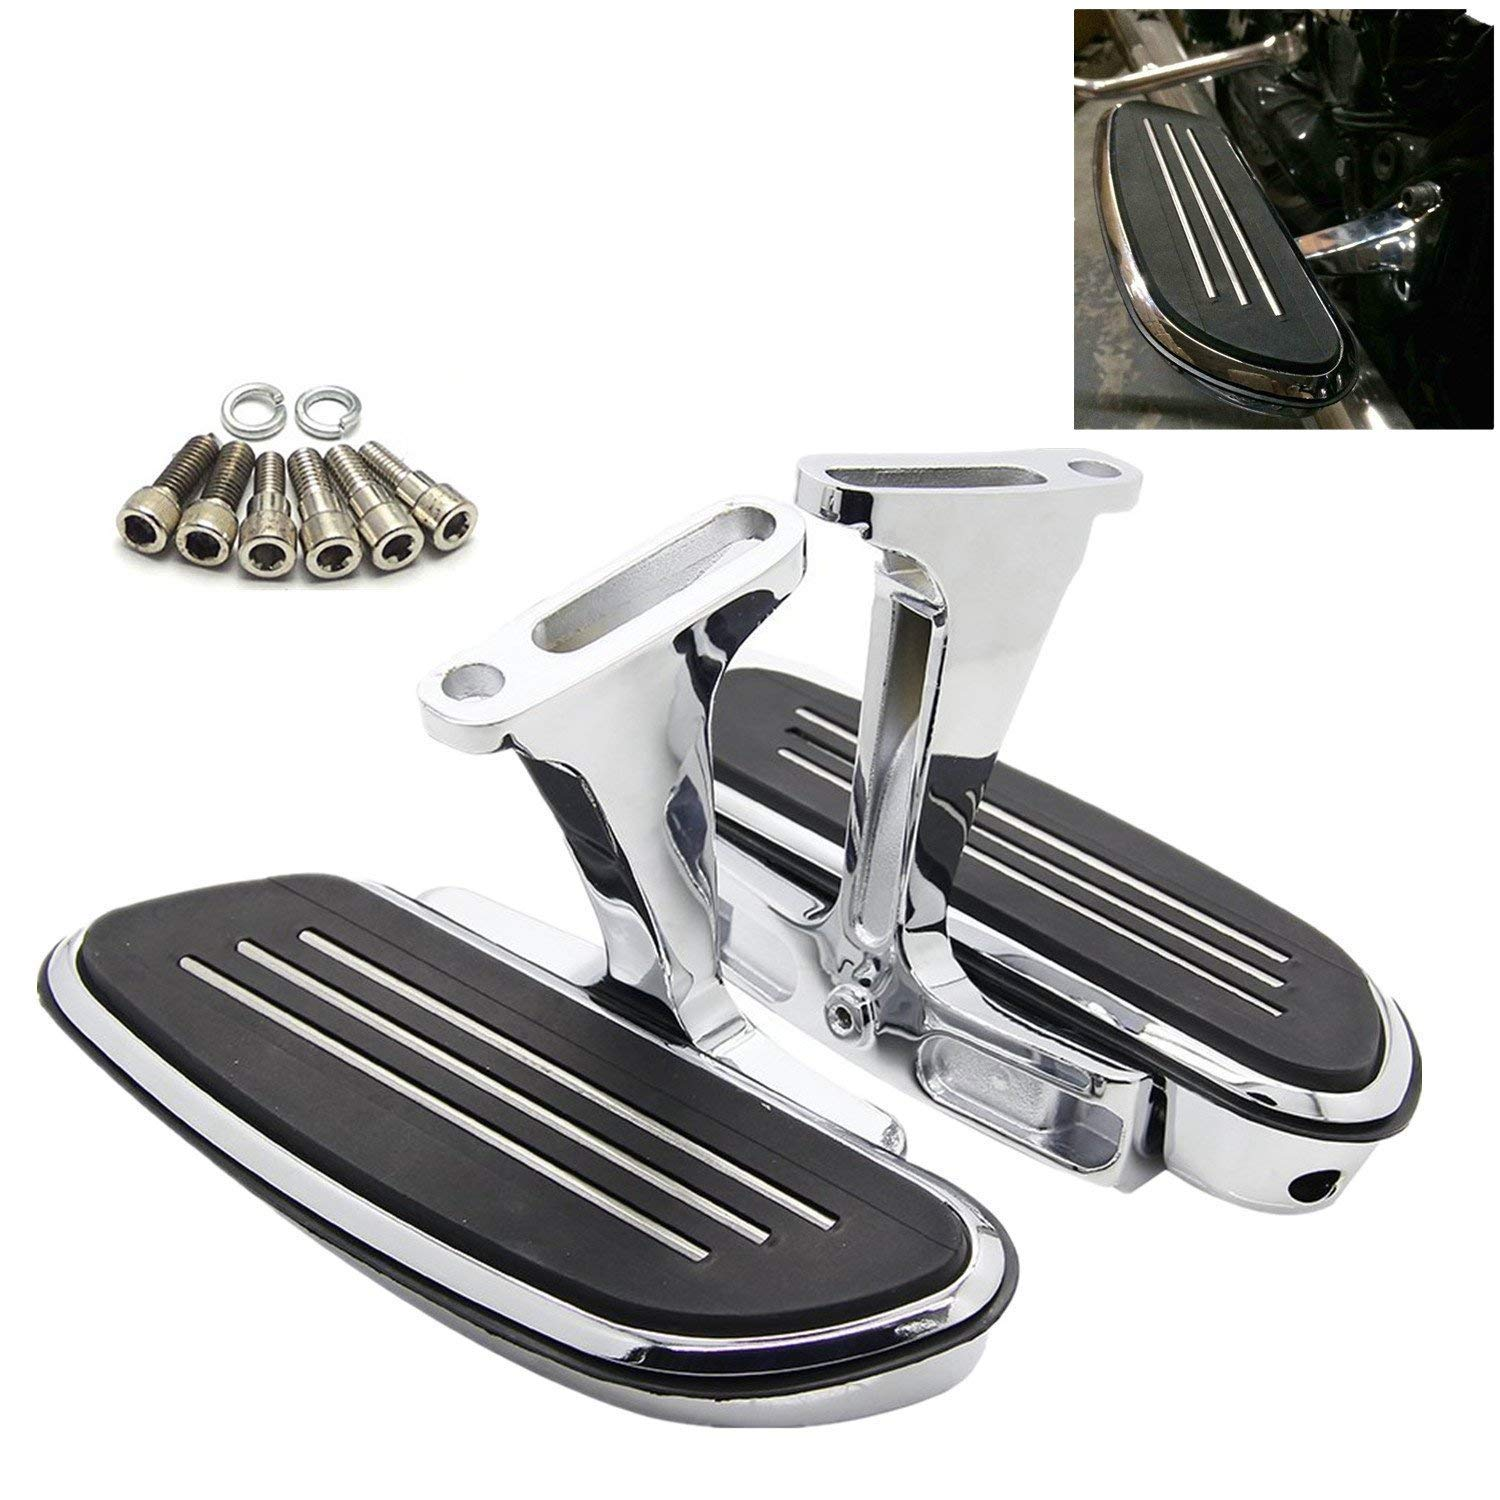 Passenger Floorboards Chromed Streamline Footboards Mount Bracket Kits for Touring Models Road King Street Glide 1993-2018 Yikesai